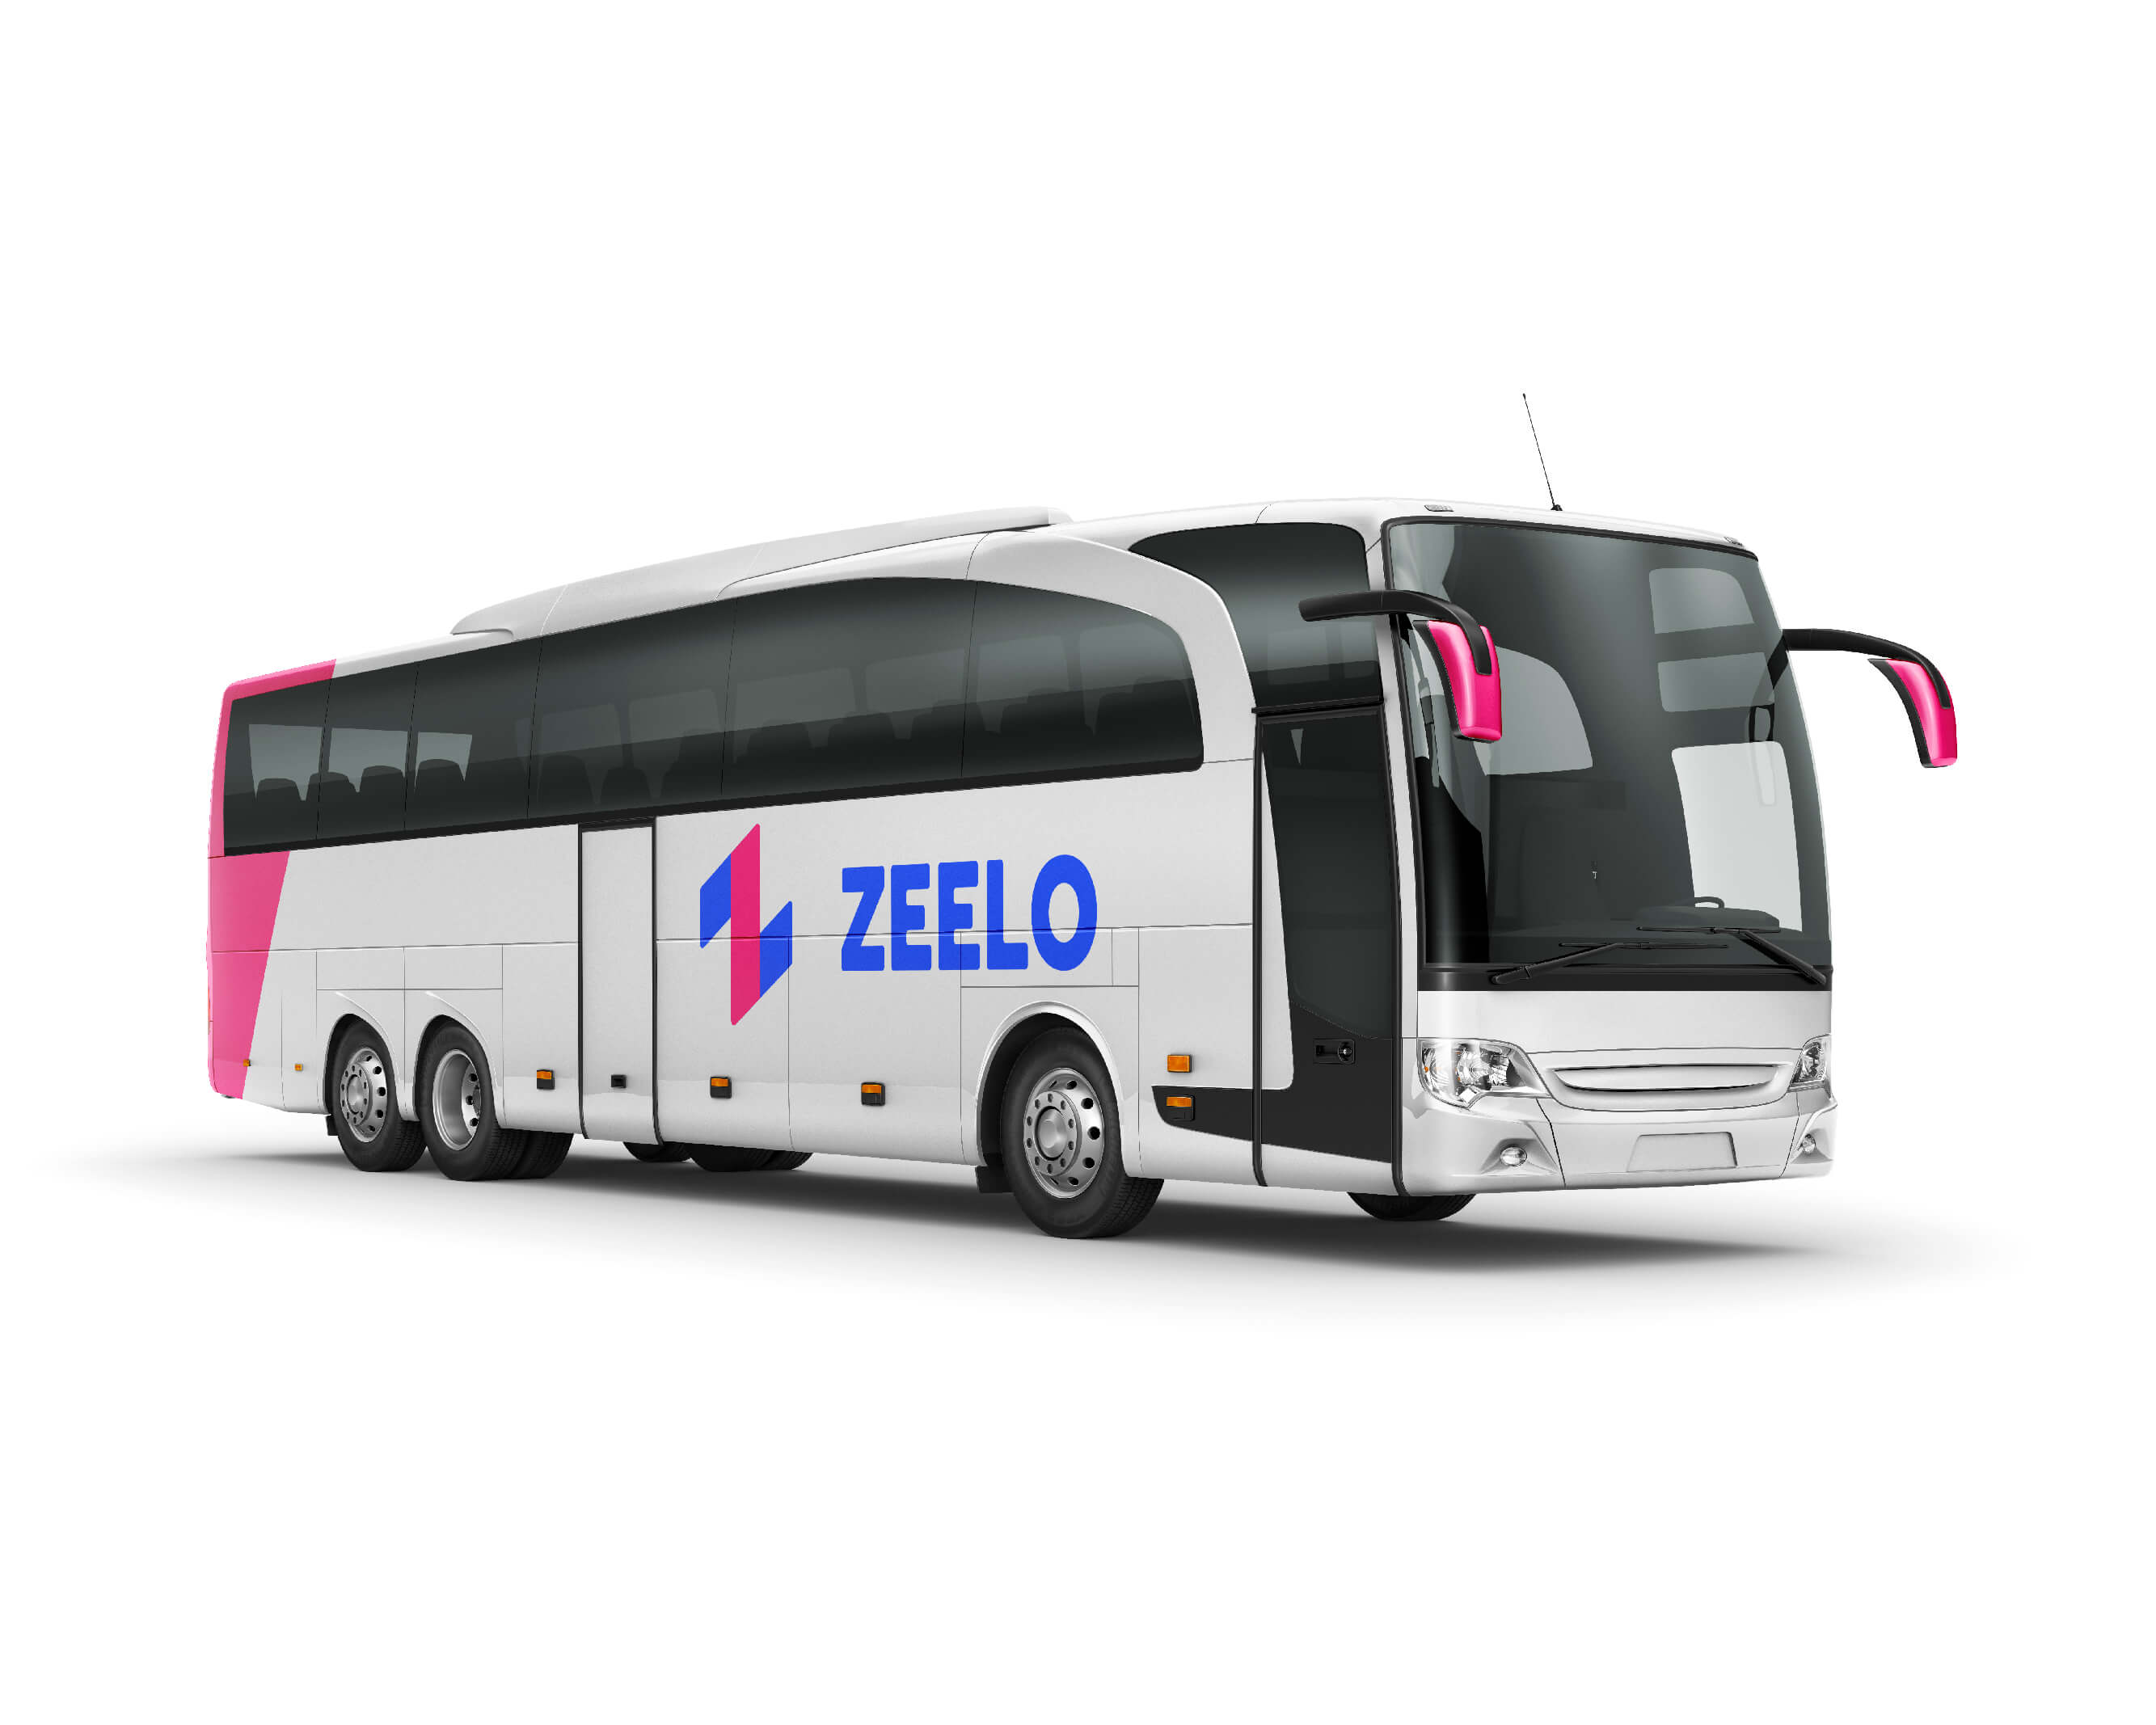 Executive Coach (Air con, Leather Seating, Additional Luggage Space, Toilet Facilities)